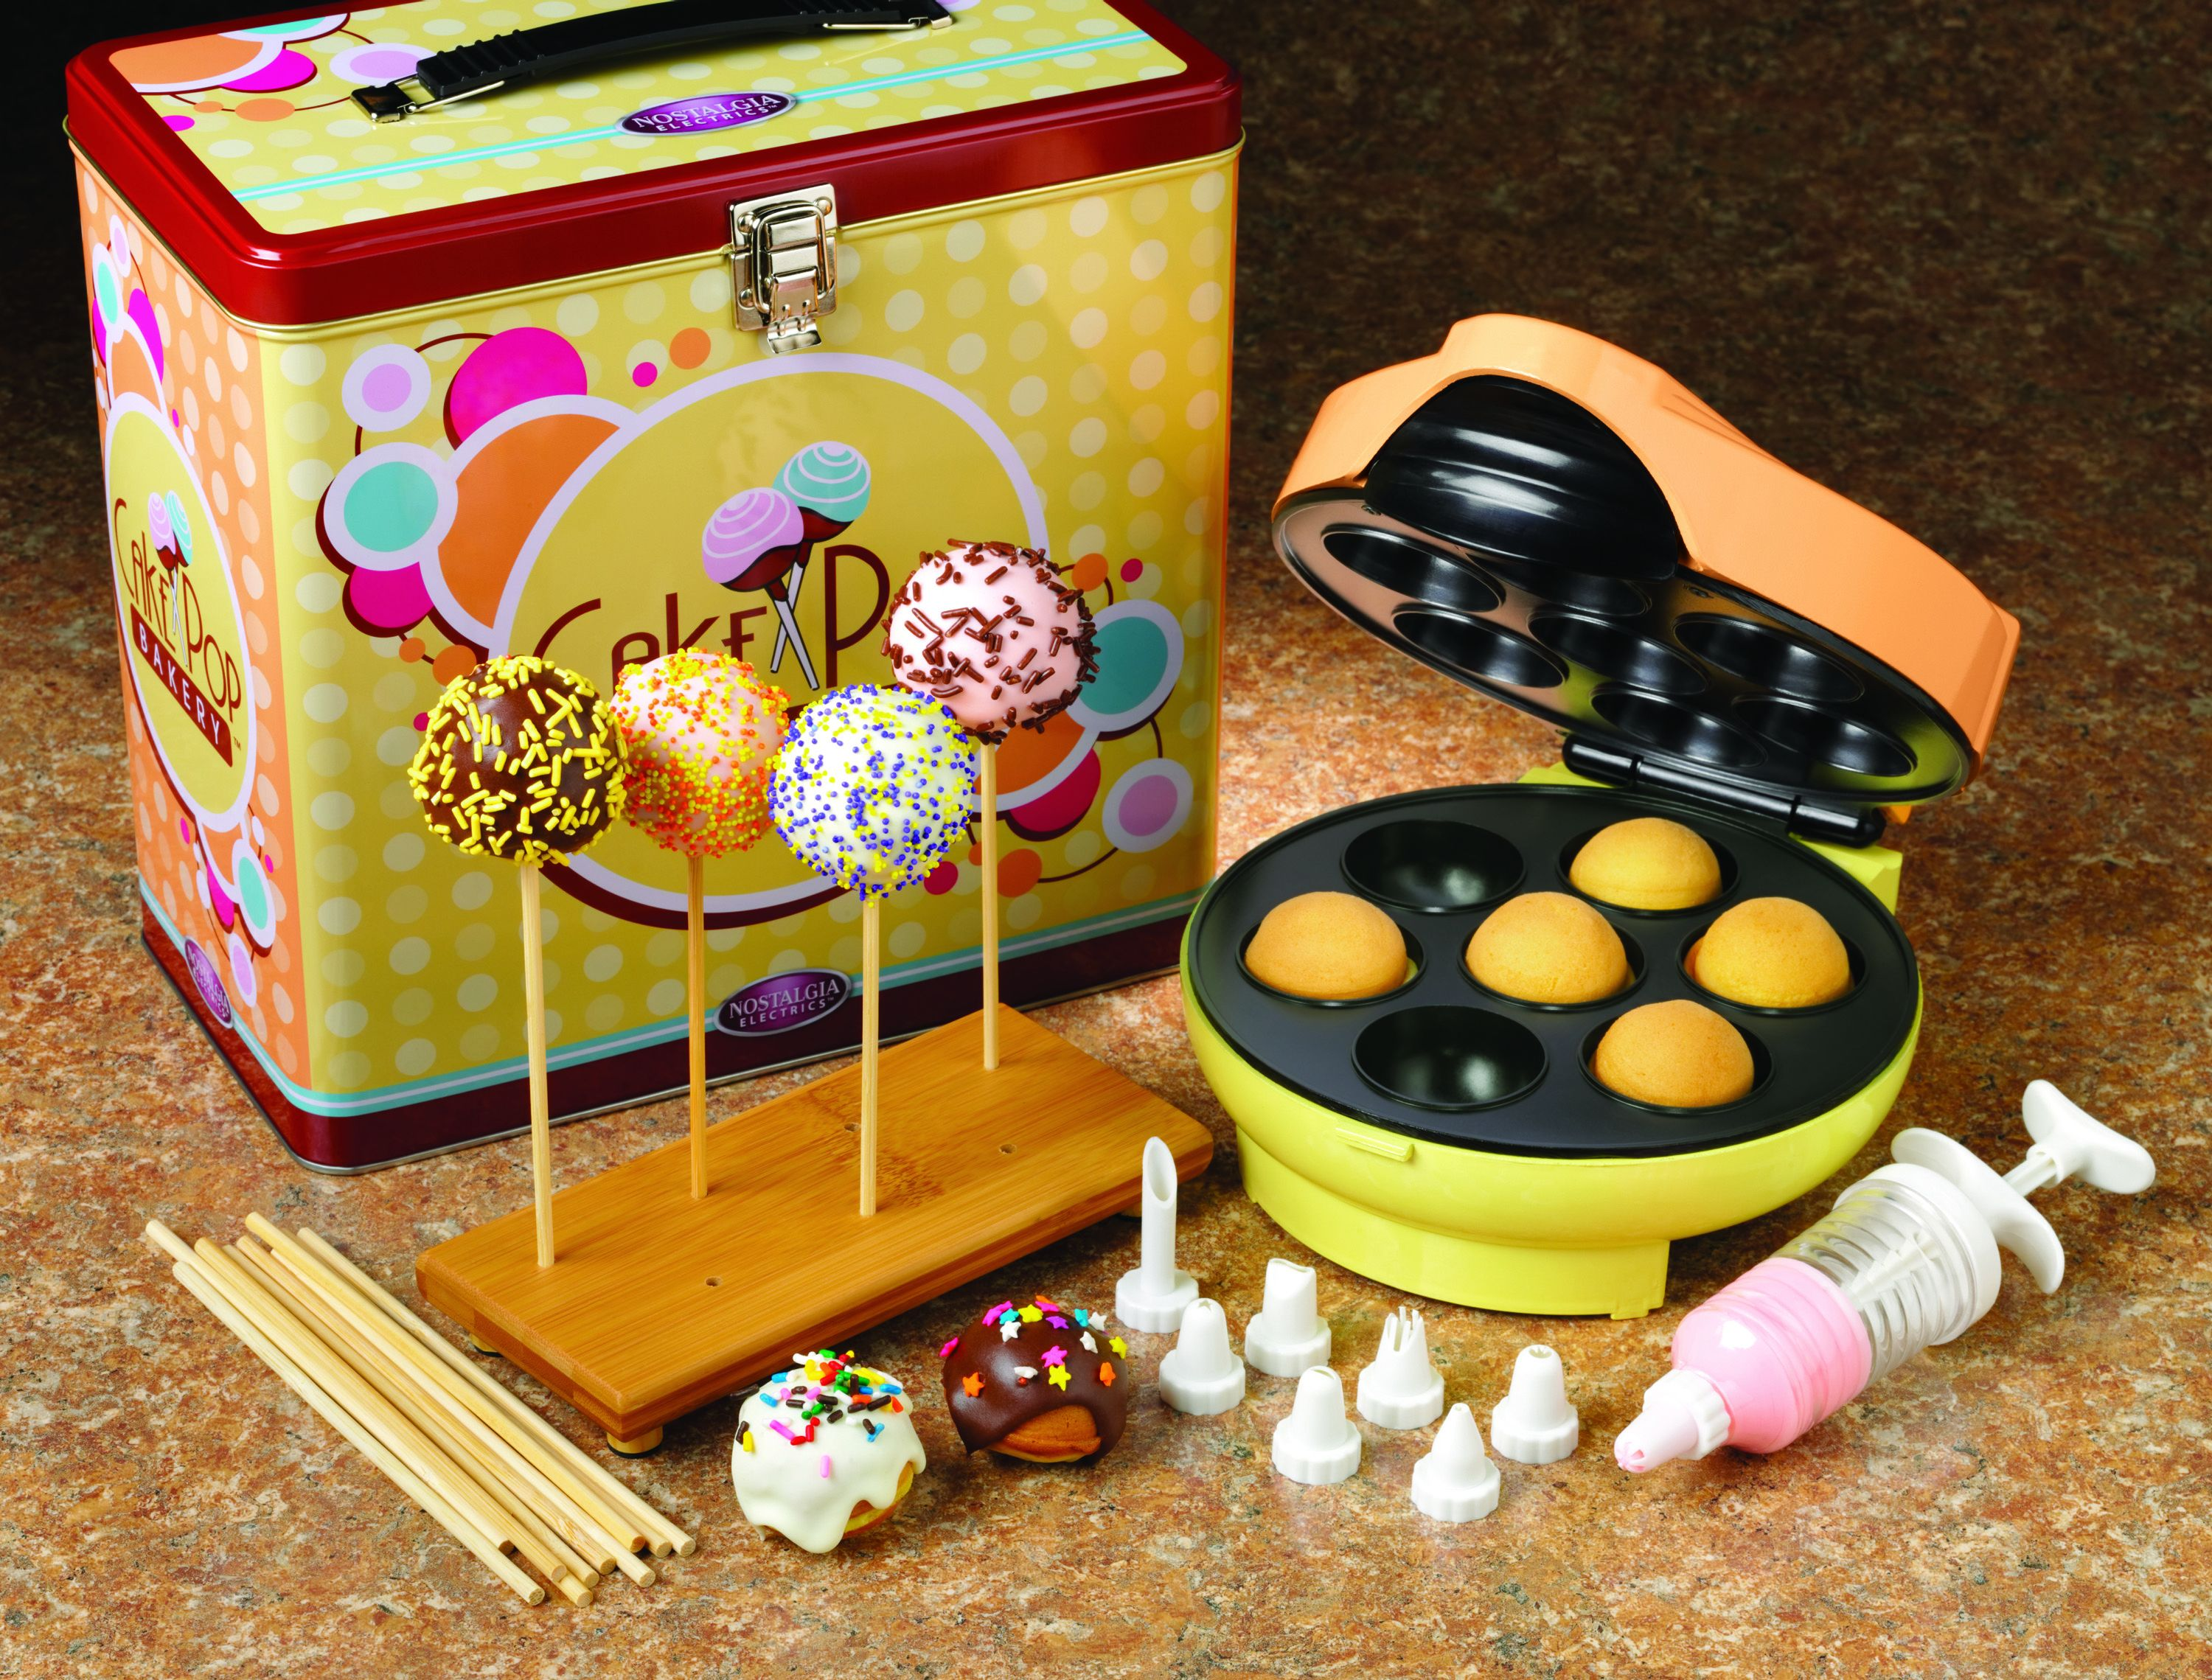 simeo cakepopmaker fc 610 f r lustige kuchen lollipops. Black Bedroom Furniture Sets. Home Design Ideas